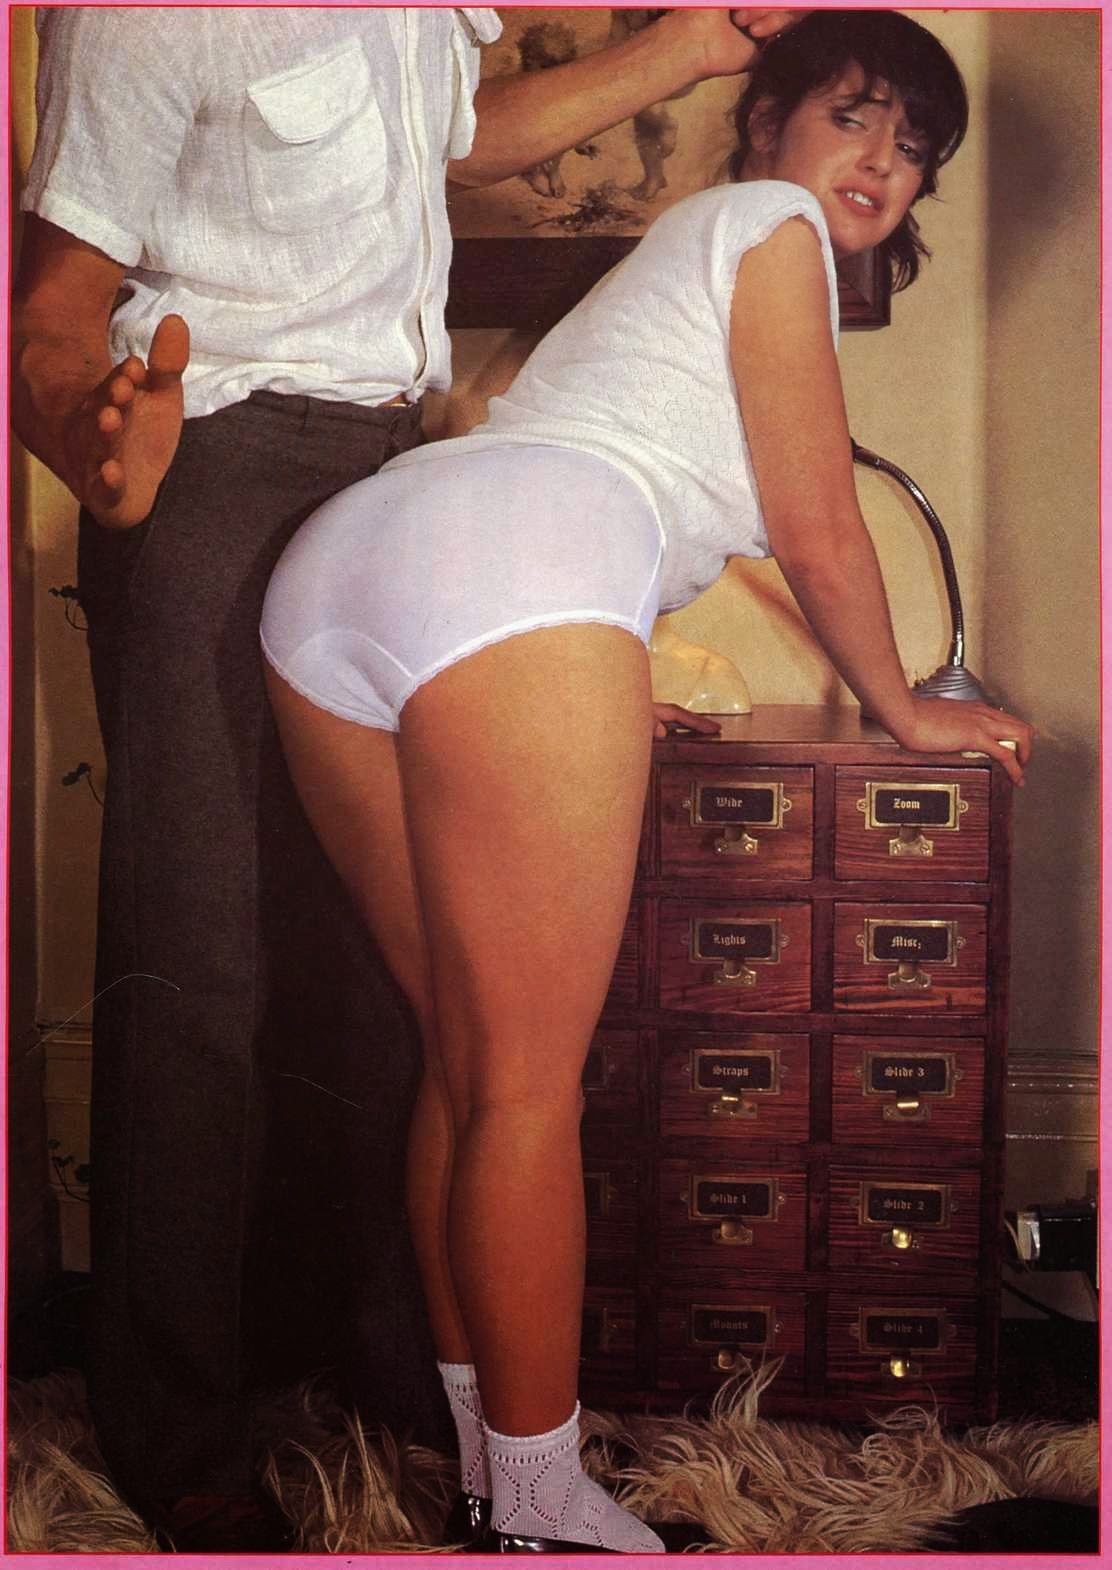 Caning Porn Pictures